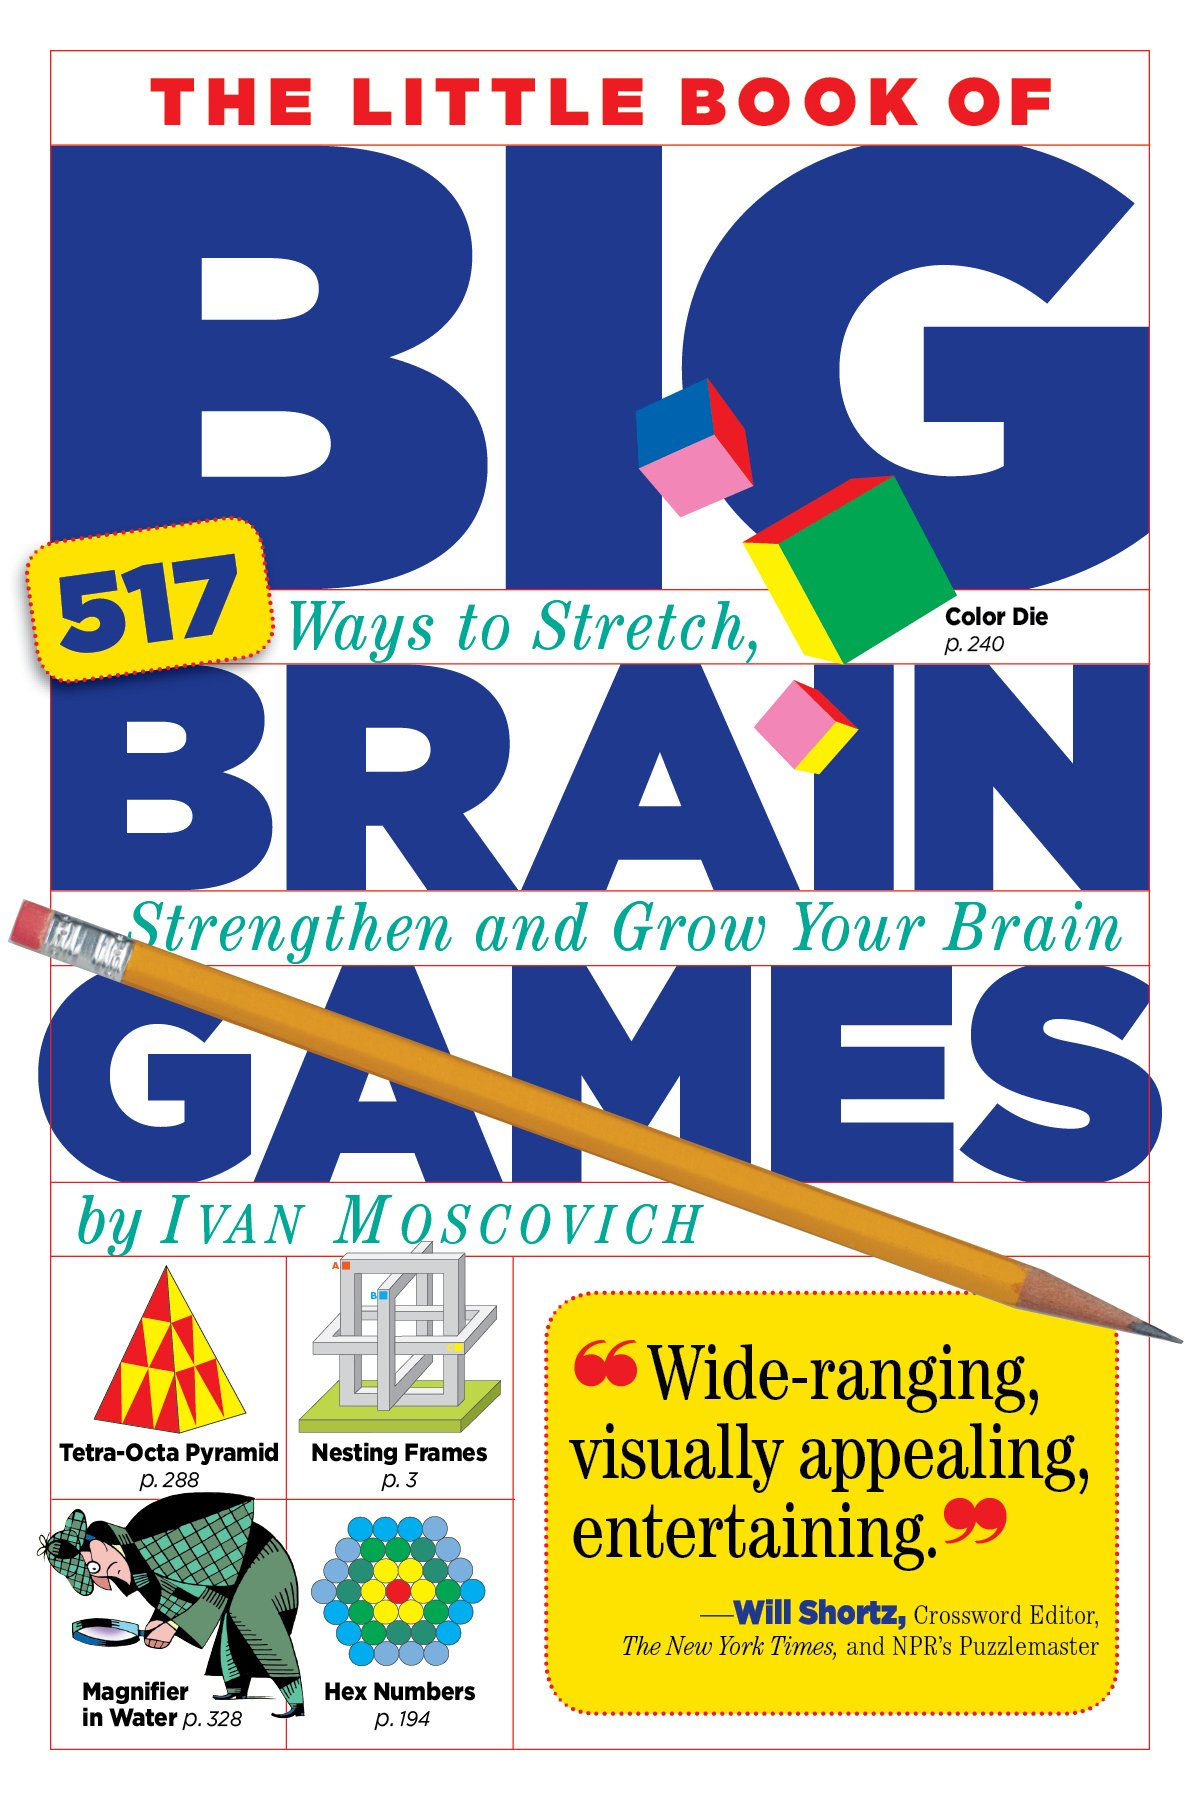 Buy The Little Book of Big Brain Games Book Online at Low Prices in India |  The Little Book of Big Brain Games Reviews & Ratings - Amazon.in